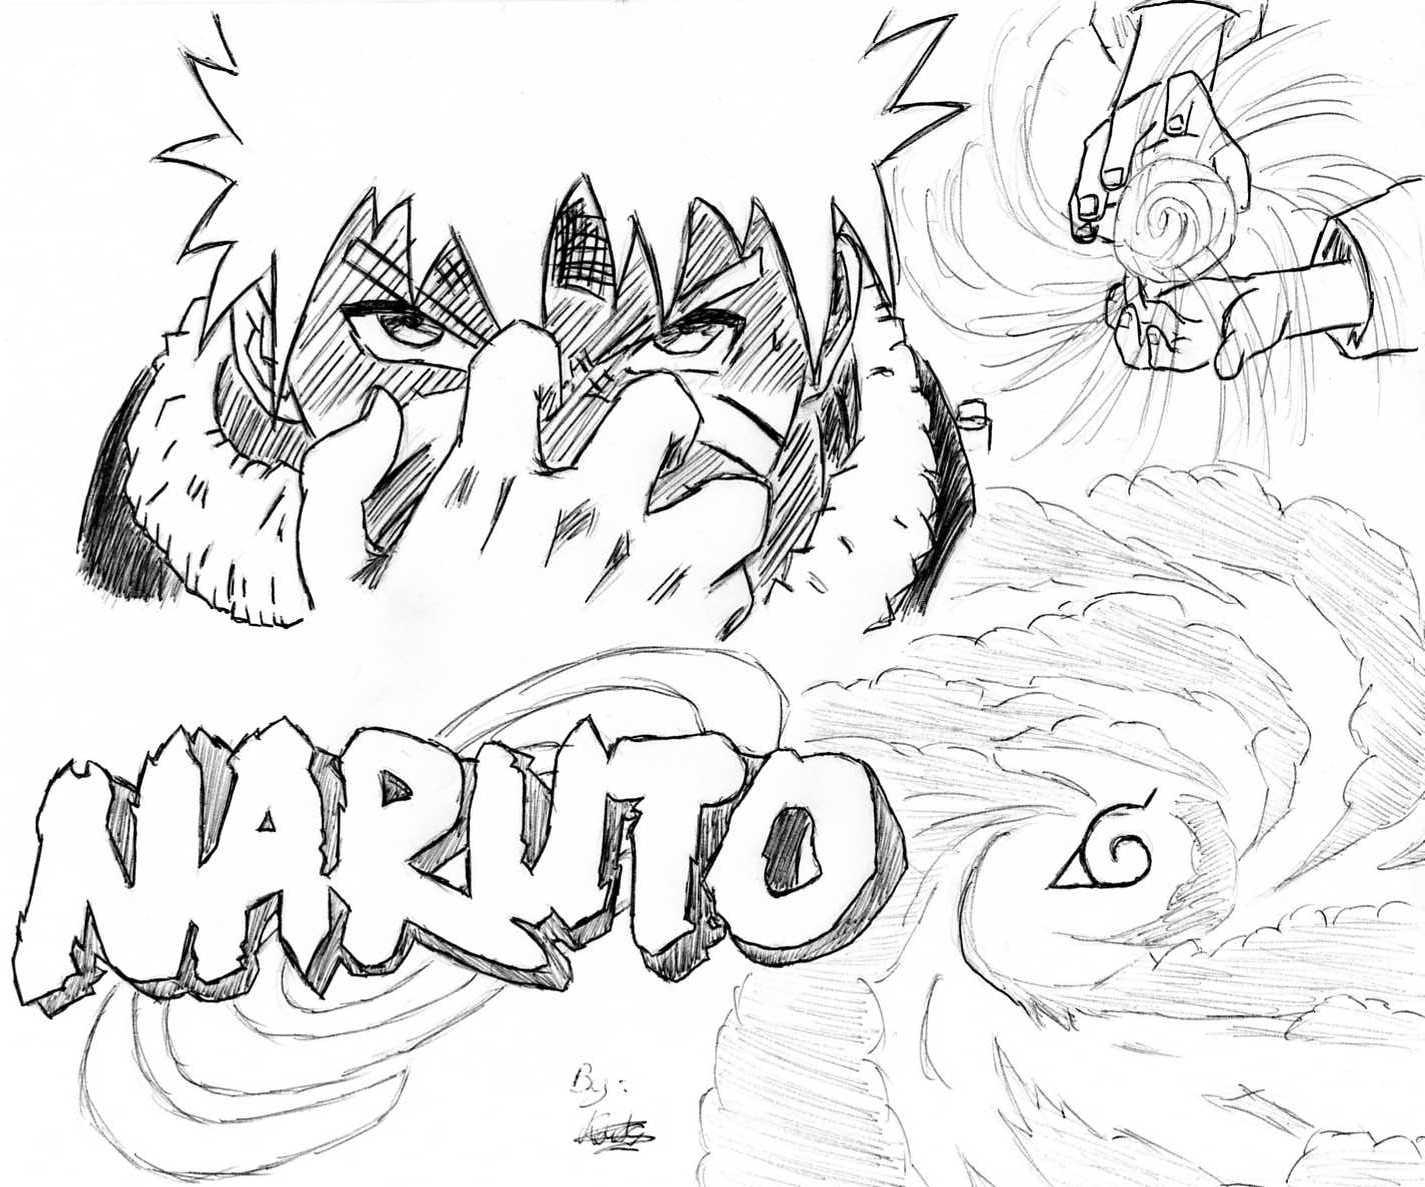 Naruto - The Way Of Naruto - Naruto Rasengan De Kouty44 tout Dessin De Shino Shippuden En Couleur